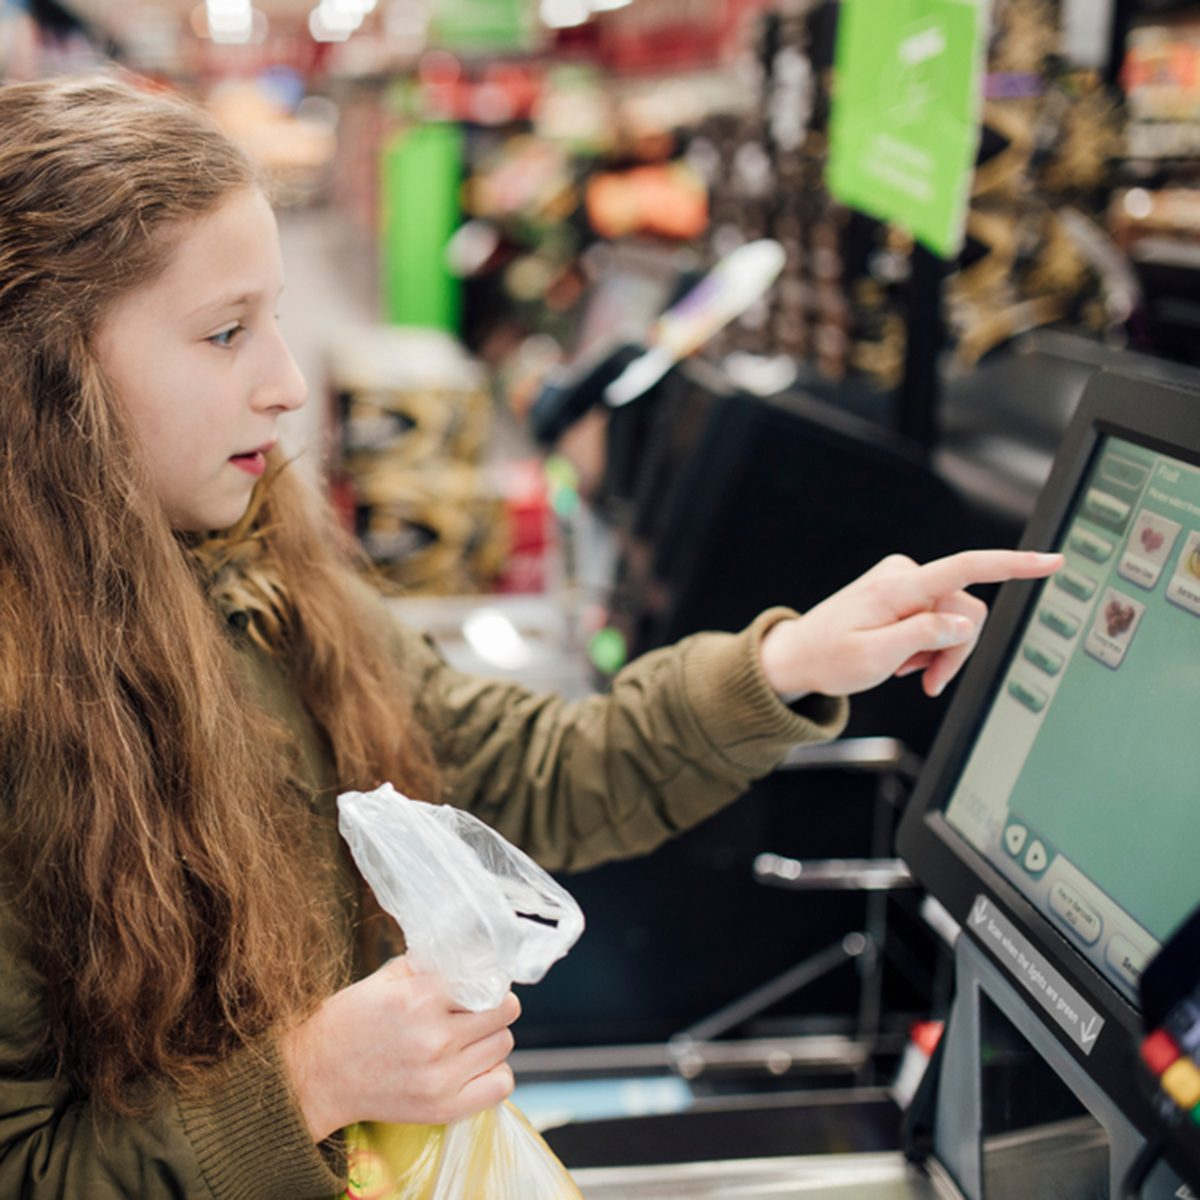 Little girl is at the self service checkout of the supermarket with her father.